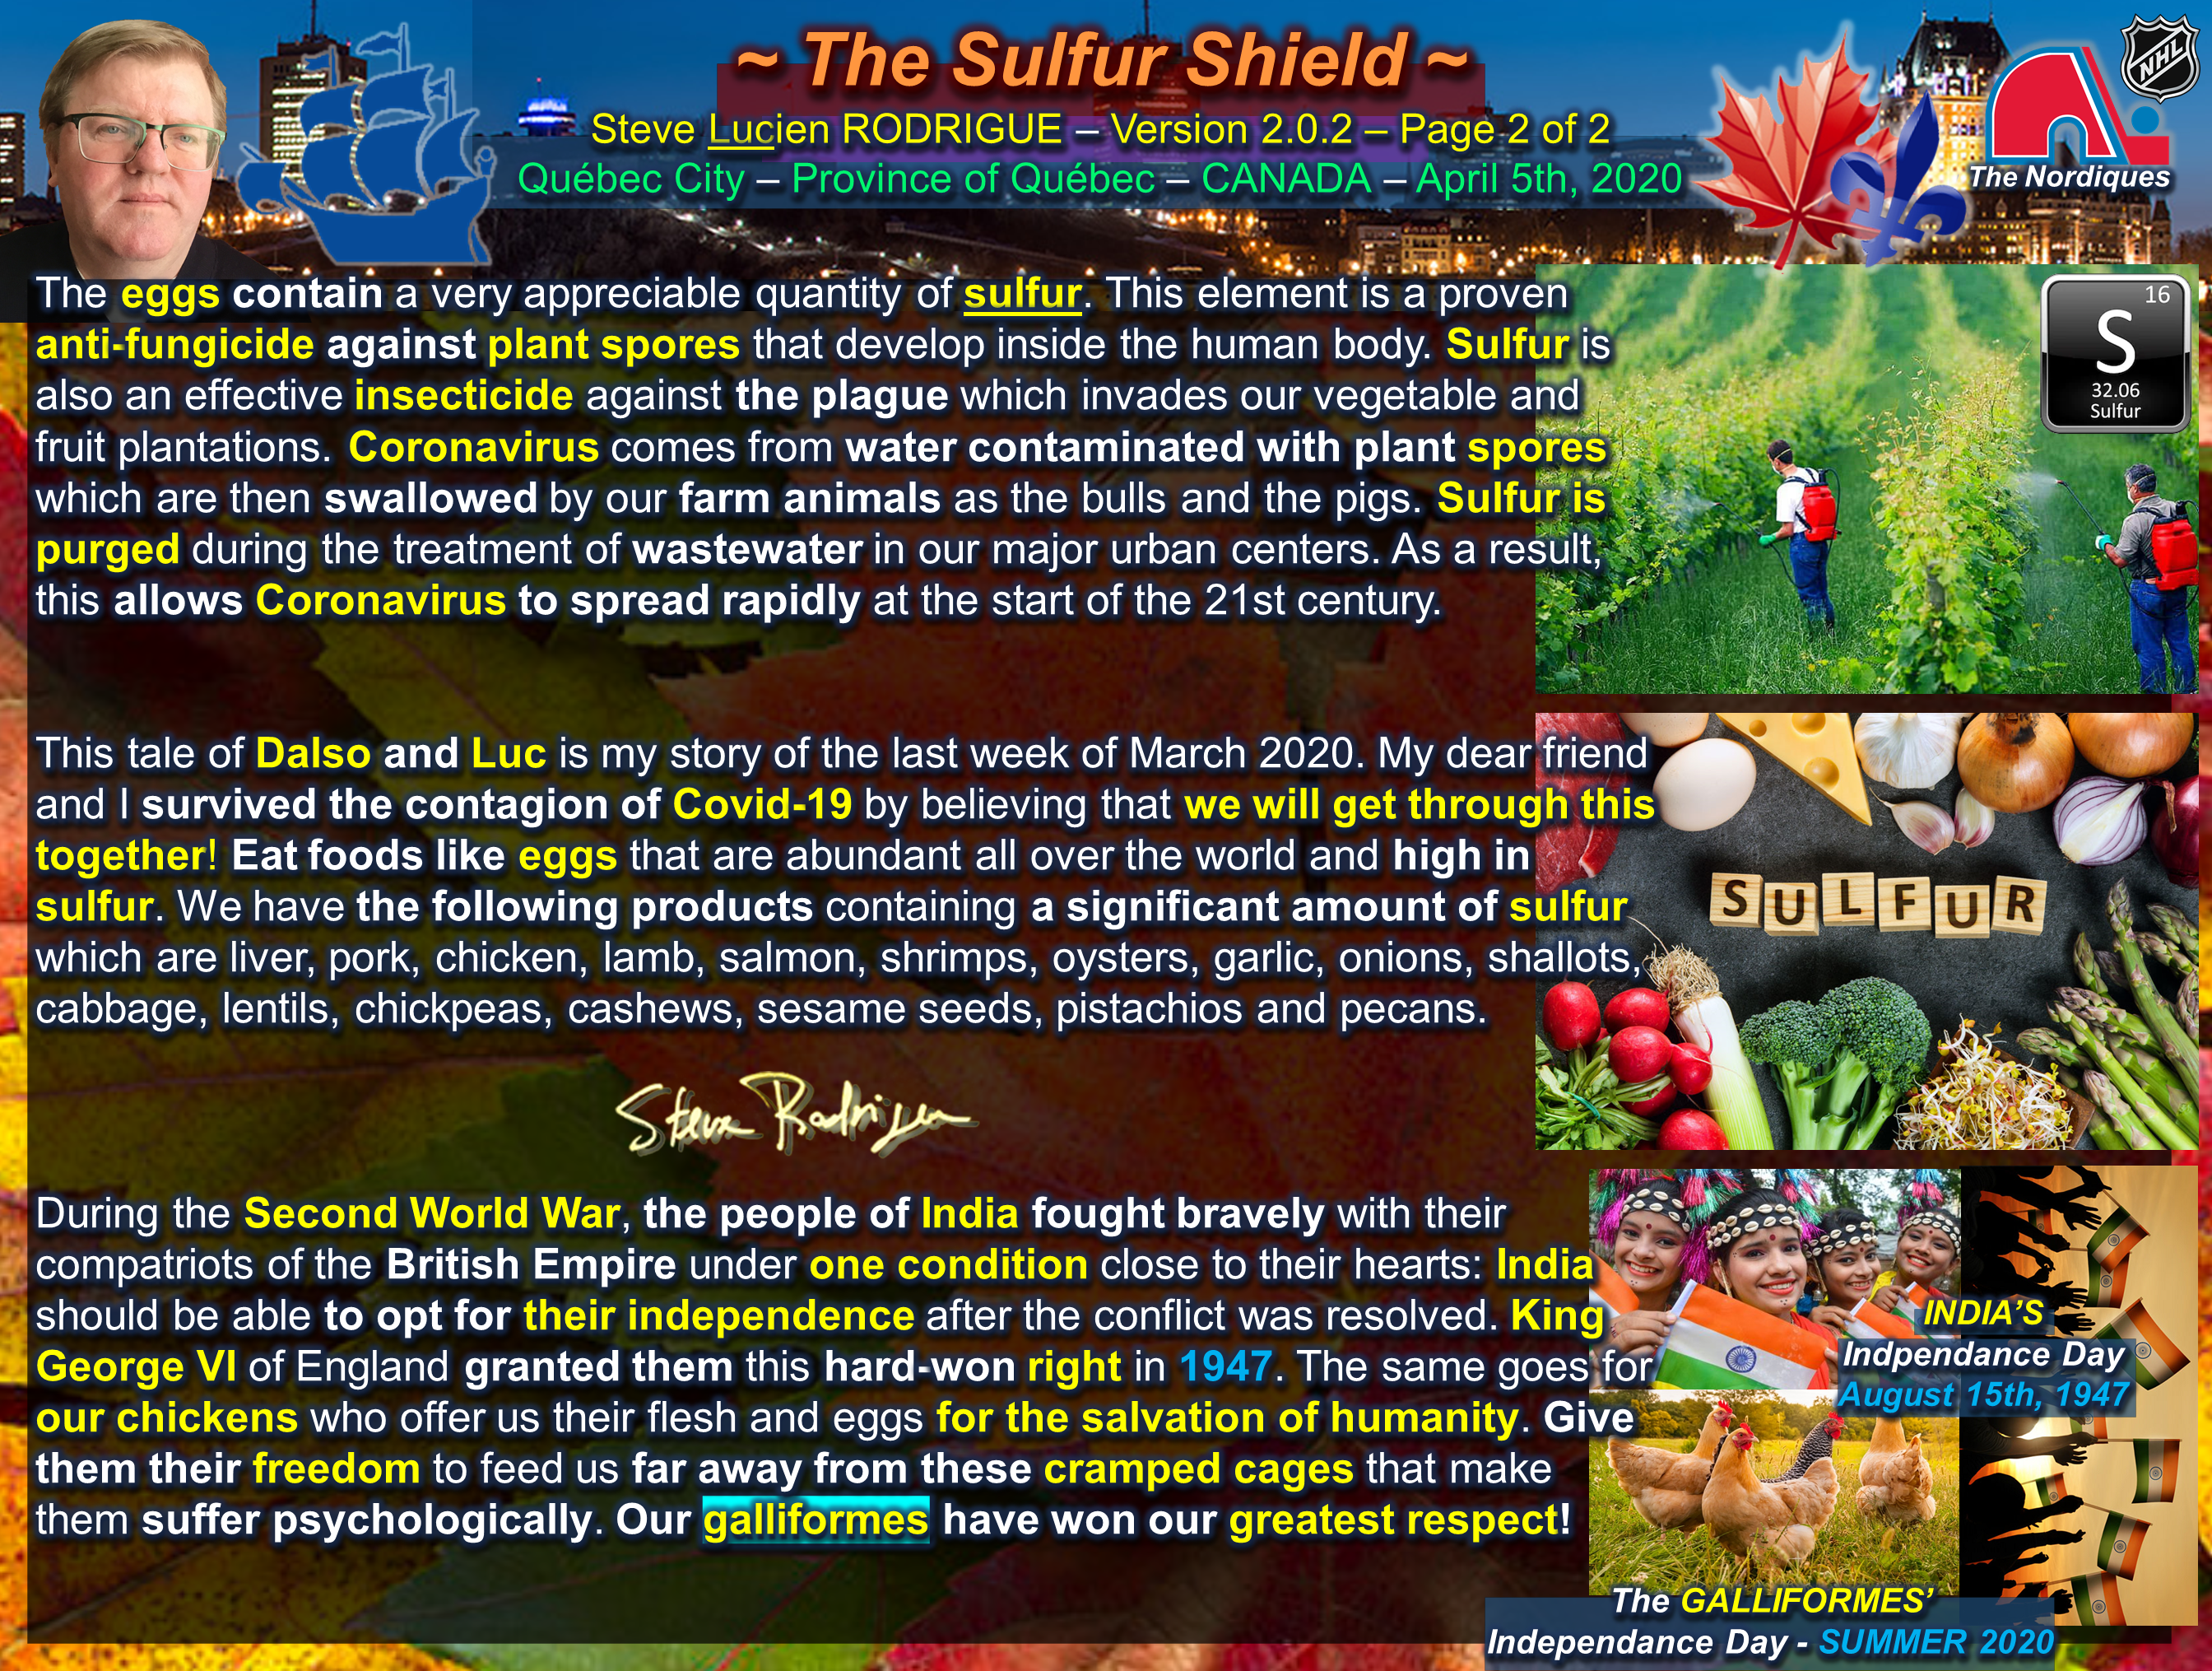 The Sulfur Shield Page 2